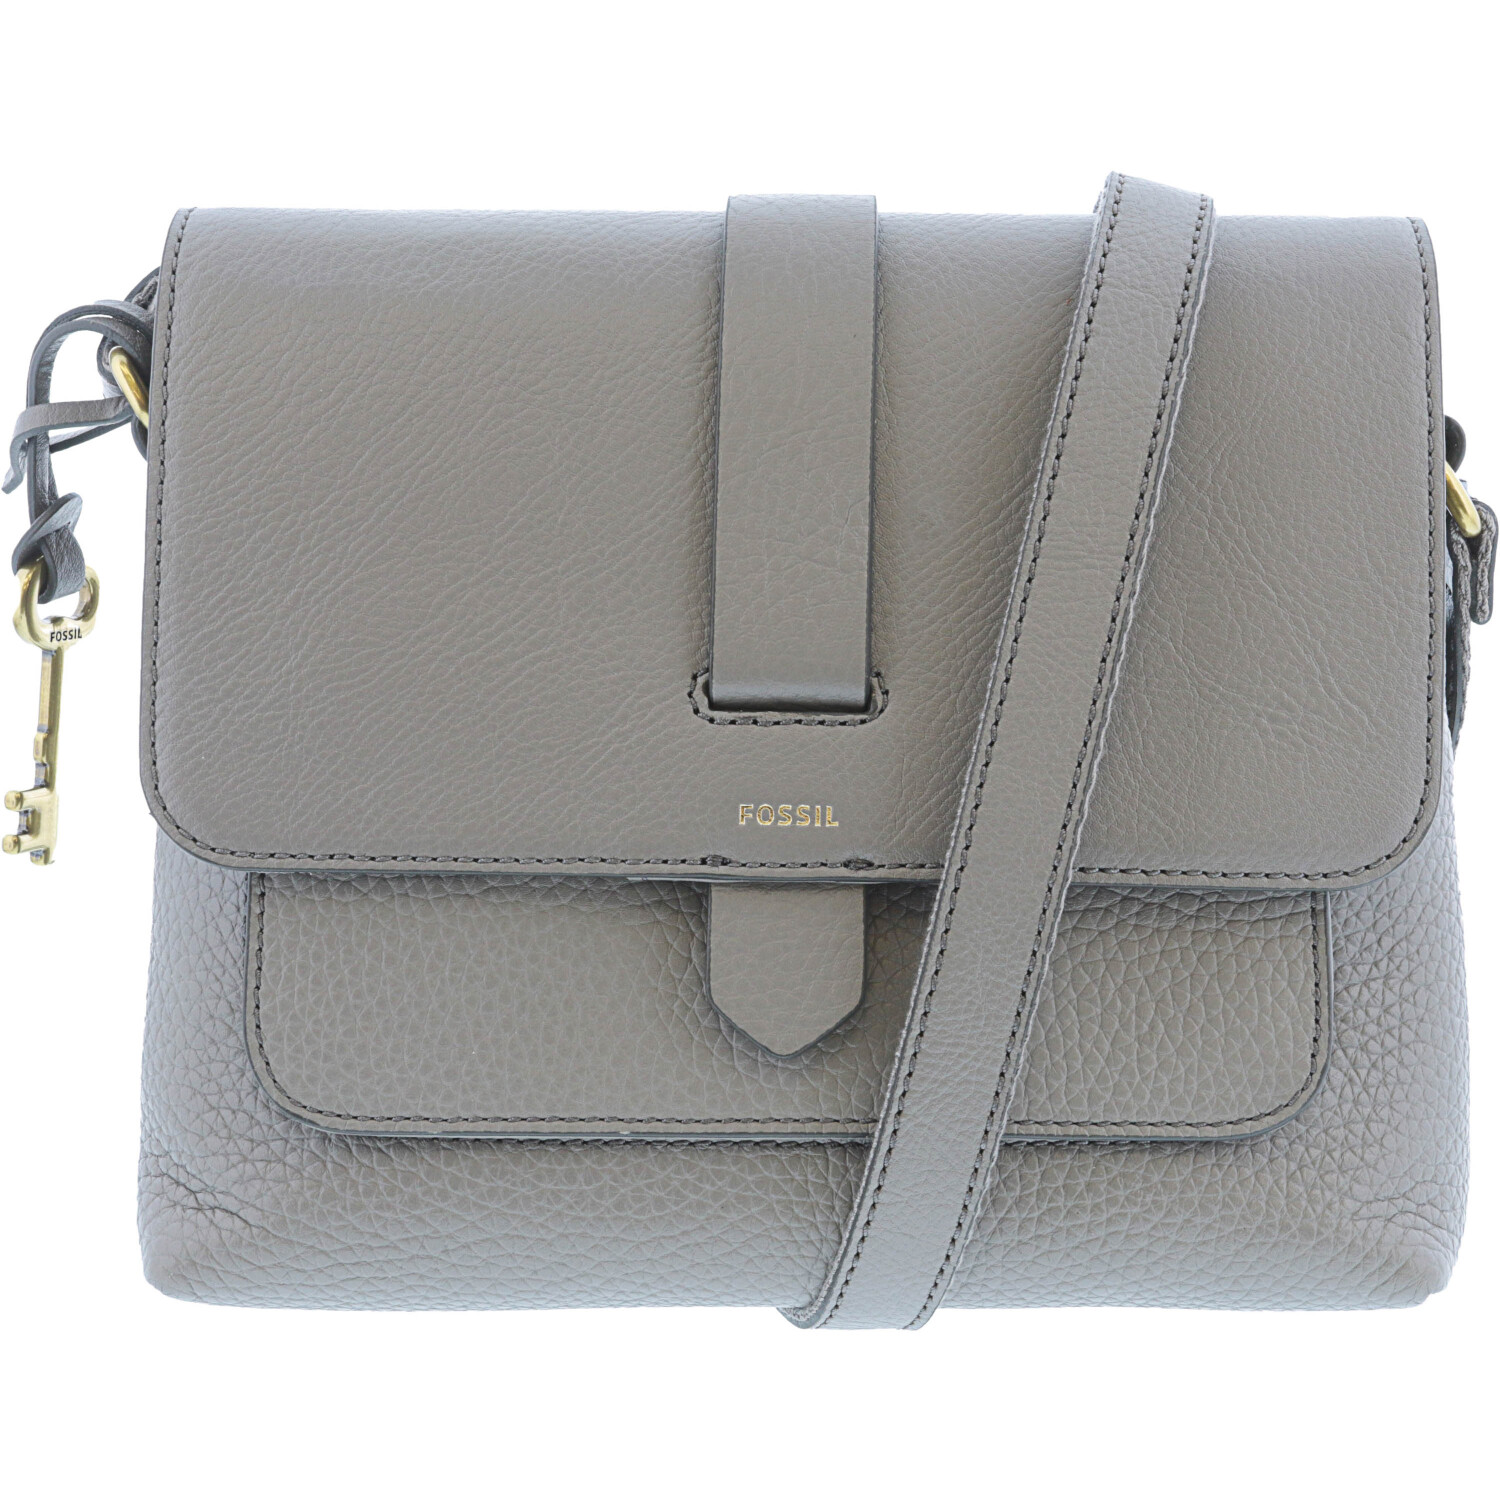 Fossil Women's Kinley Small Crossbody Leather Cross Body Bag - Shadow